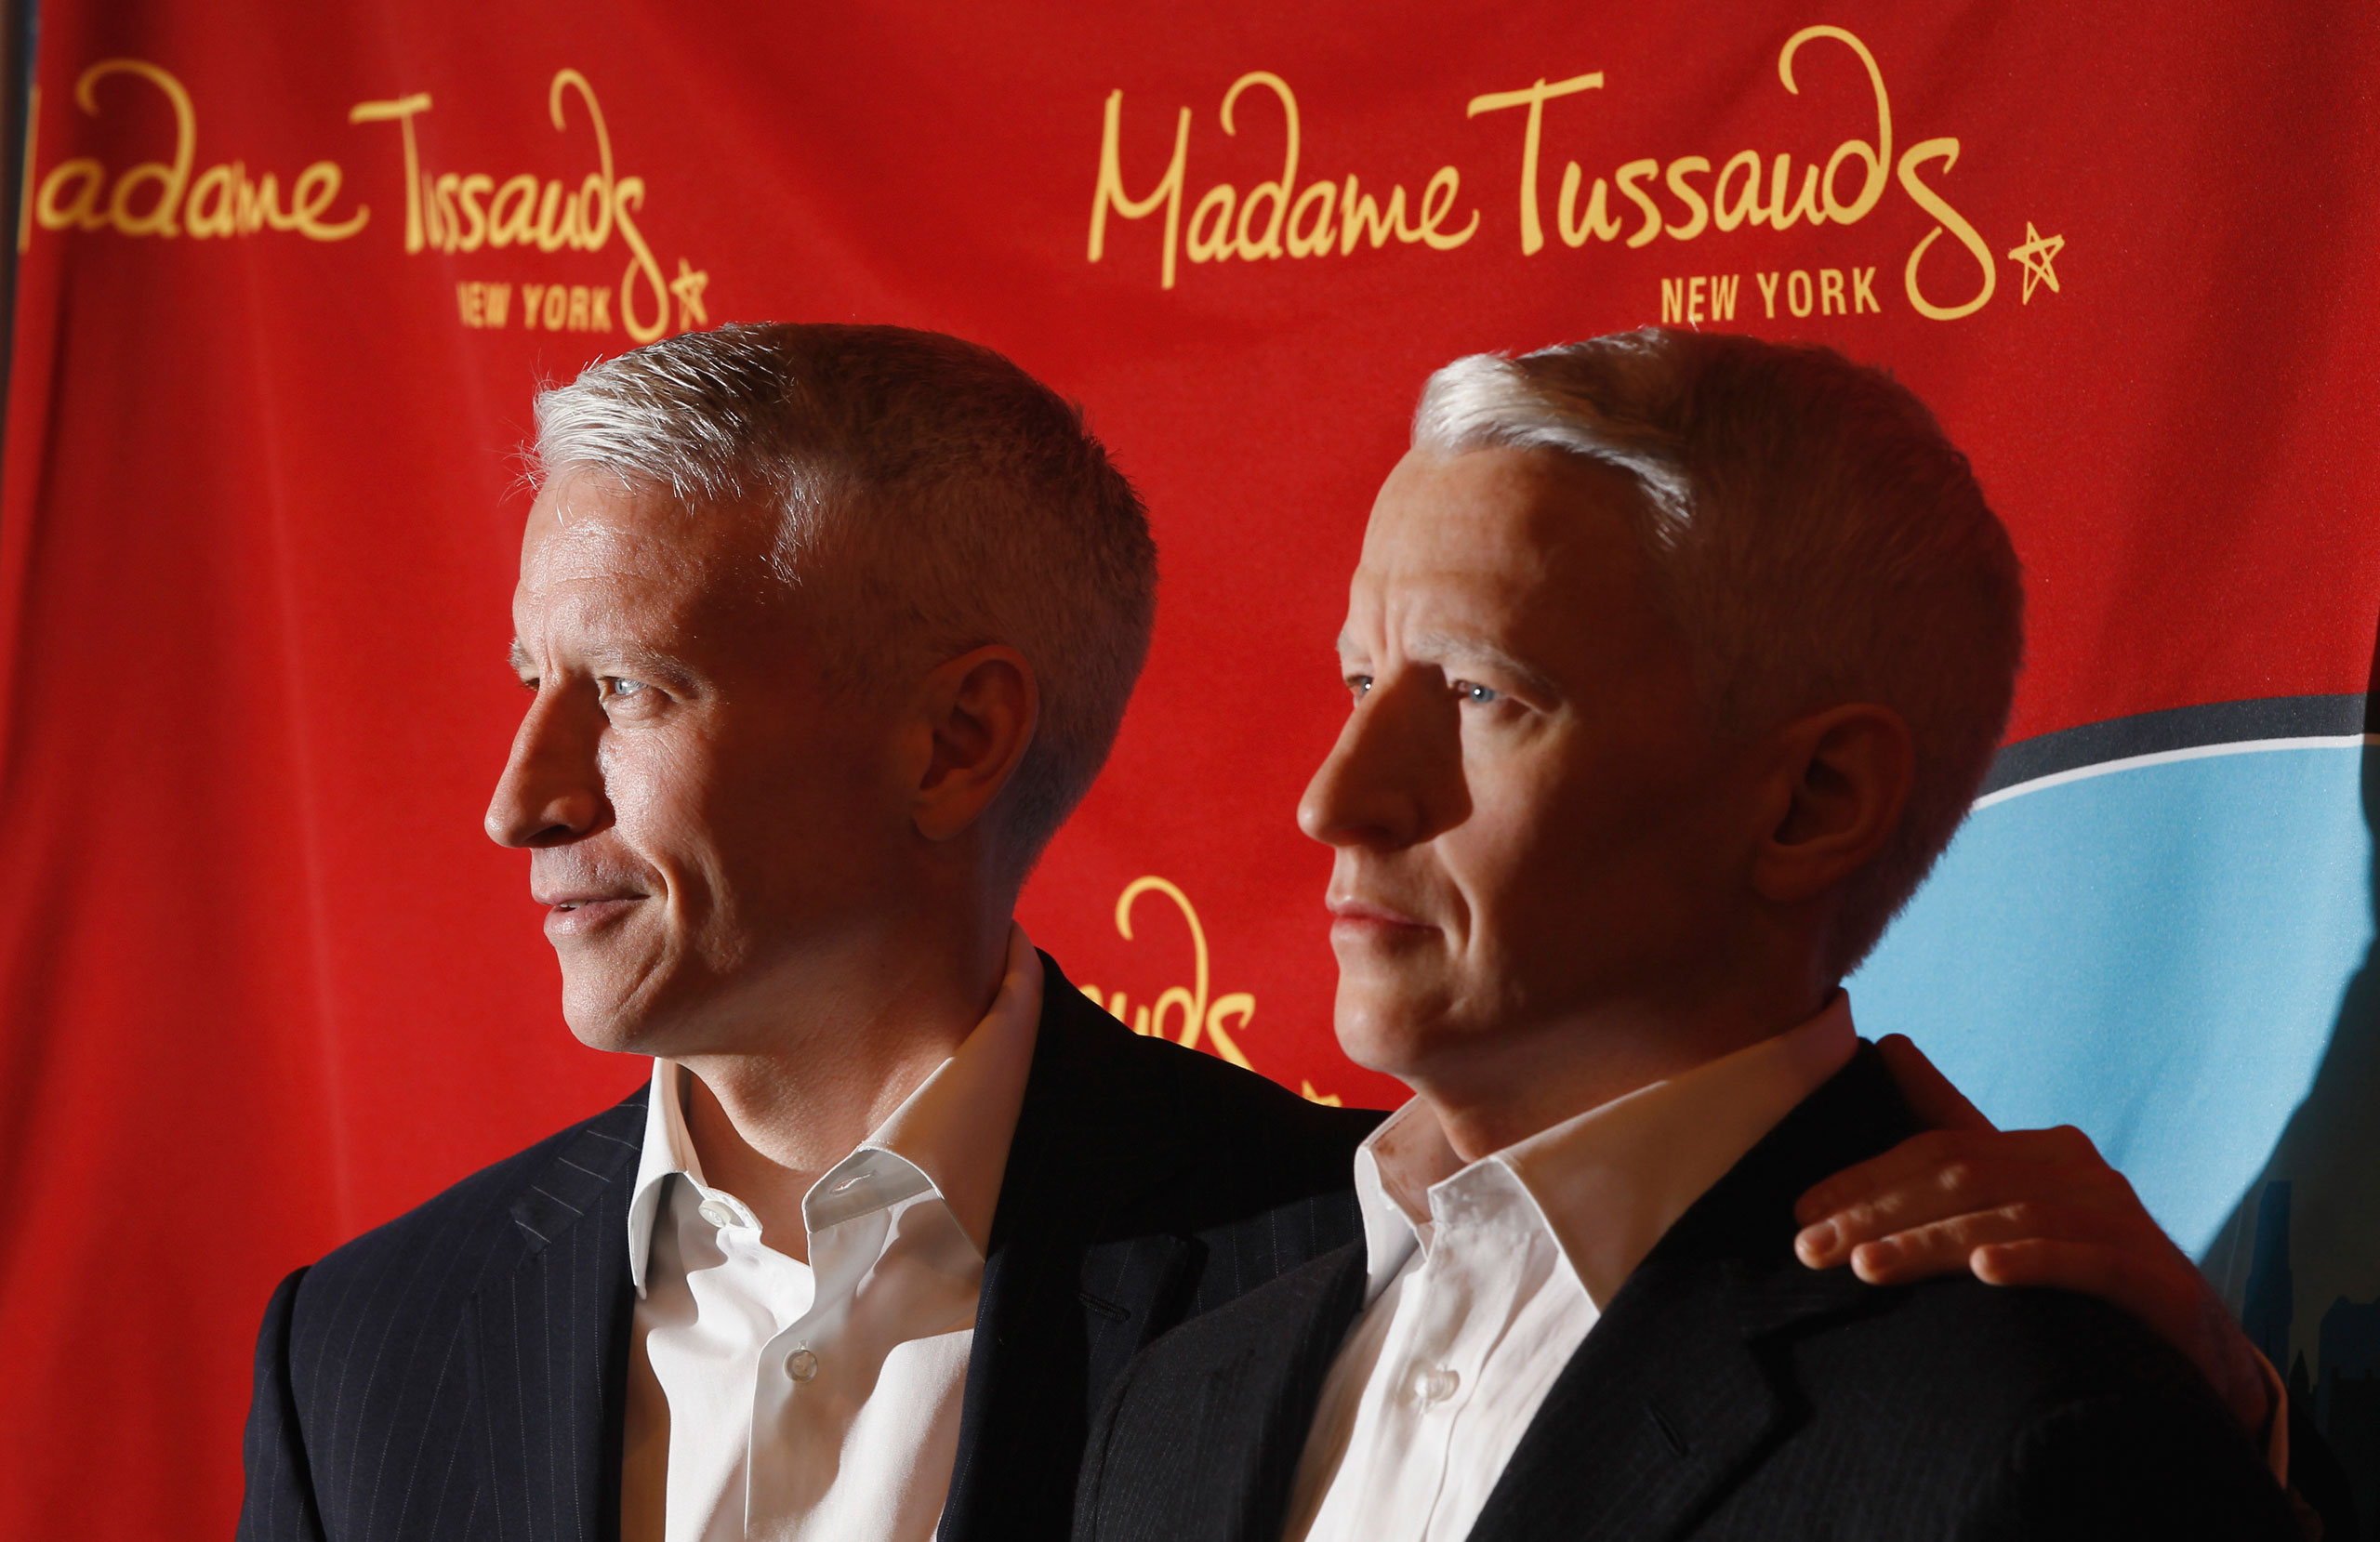 Anderson Cooper, left, poses with his wax figure as it is unveiled at Madame Tussauds on Sept. 14, 2011 in New York.